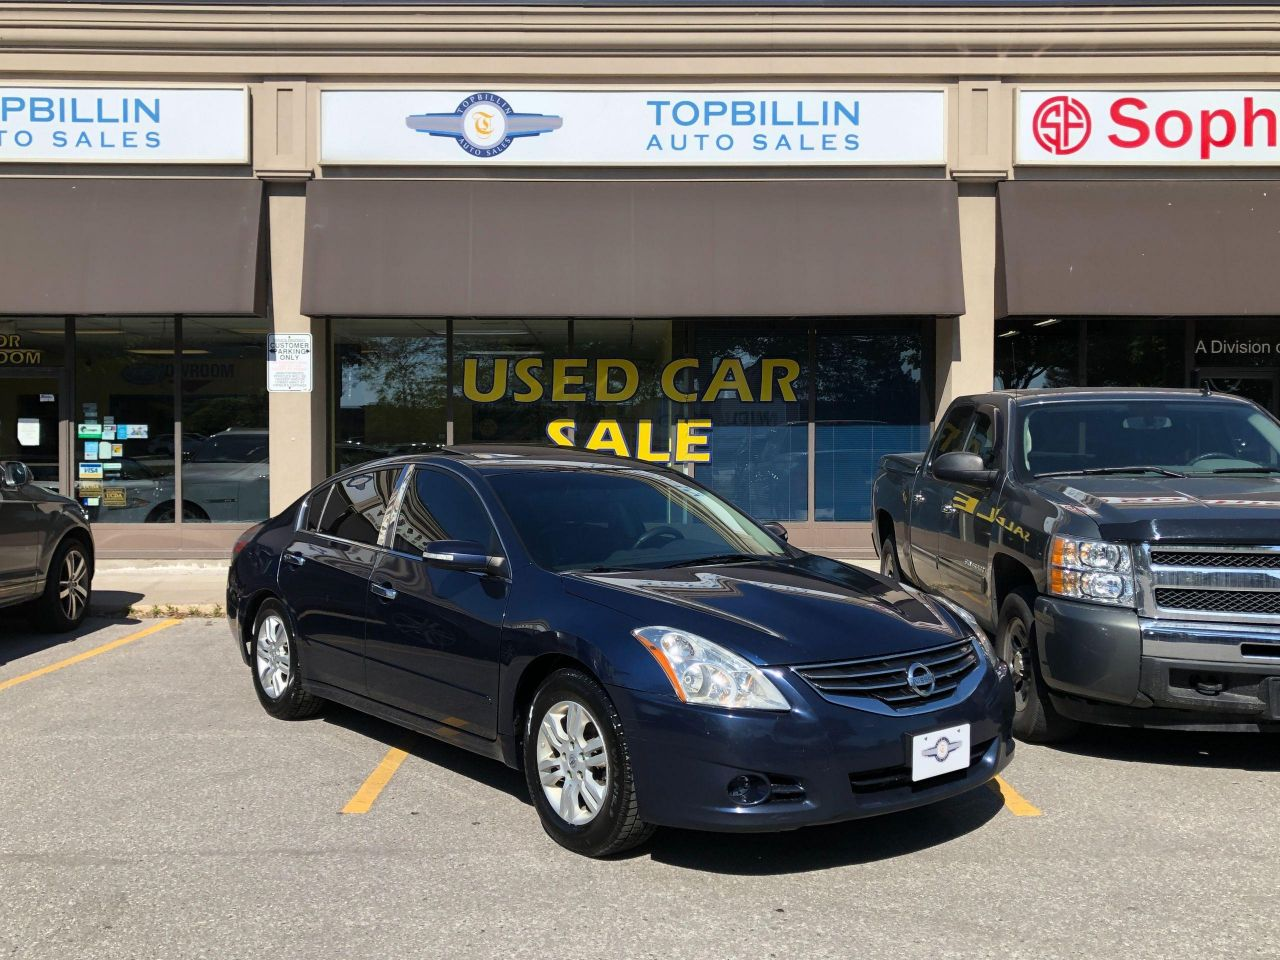 2011 Nissan Altima 2.5 SL Leather, Sunroof, 2 Years Warranty